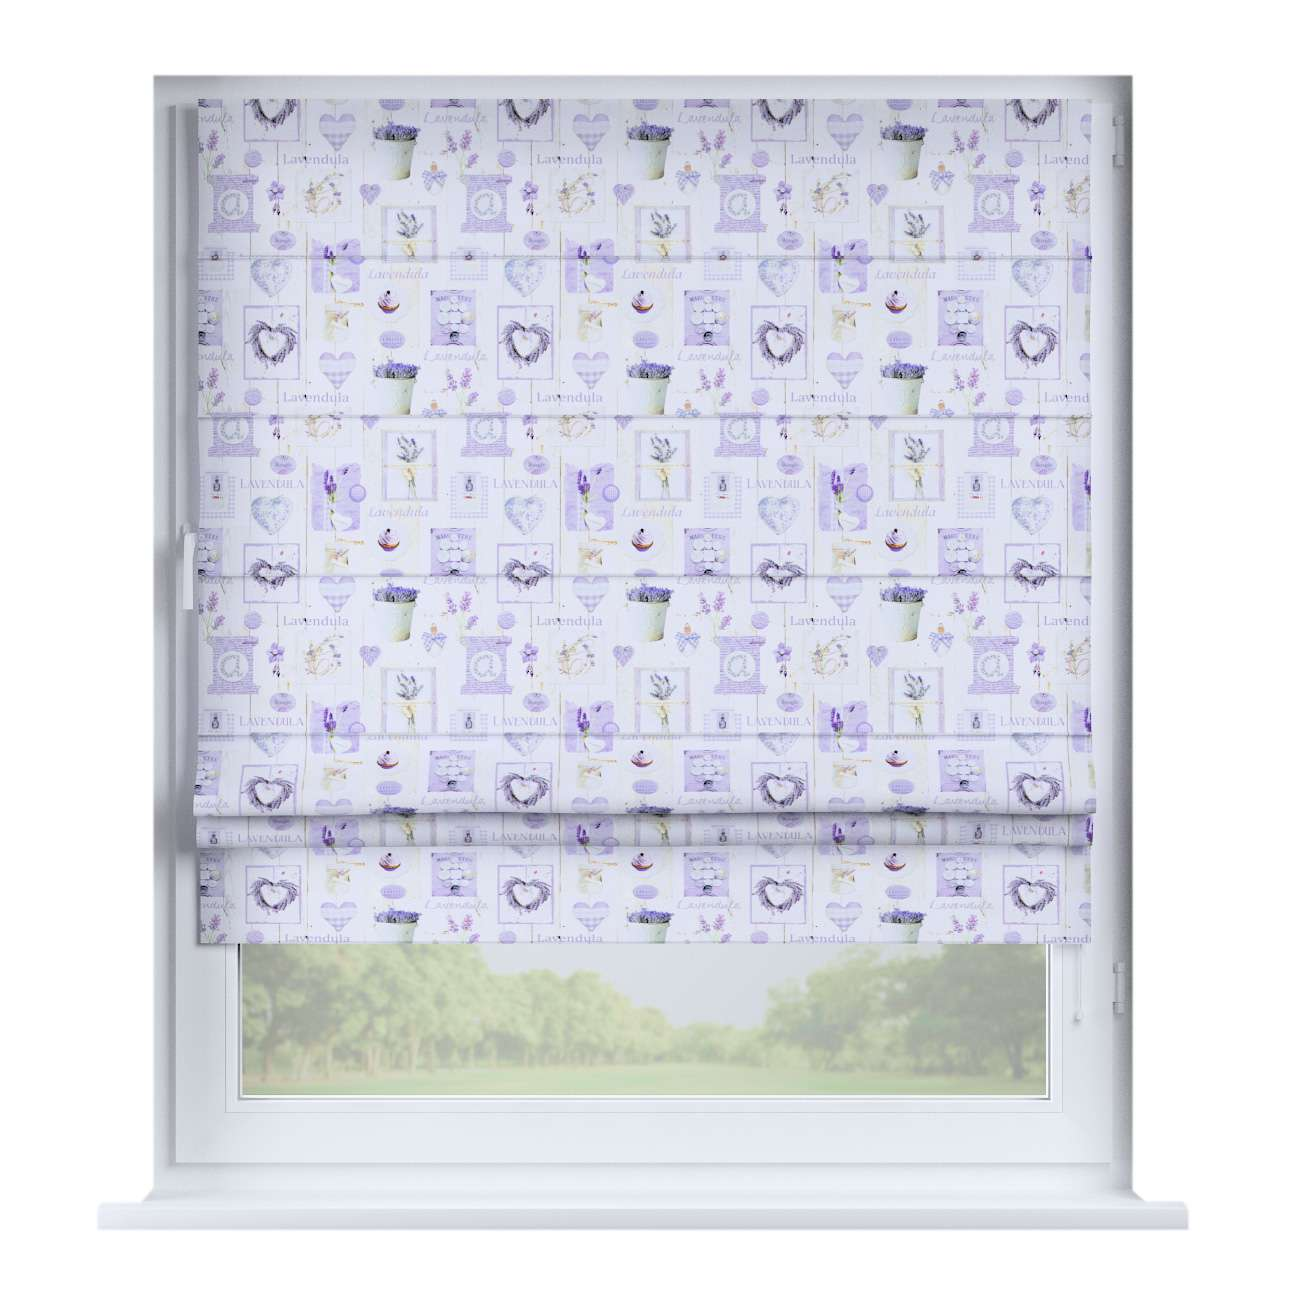 Padva roman blind  80 x 170 cm (31.5 x 67 inch) in collection Ashley, fabric: 140-18